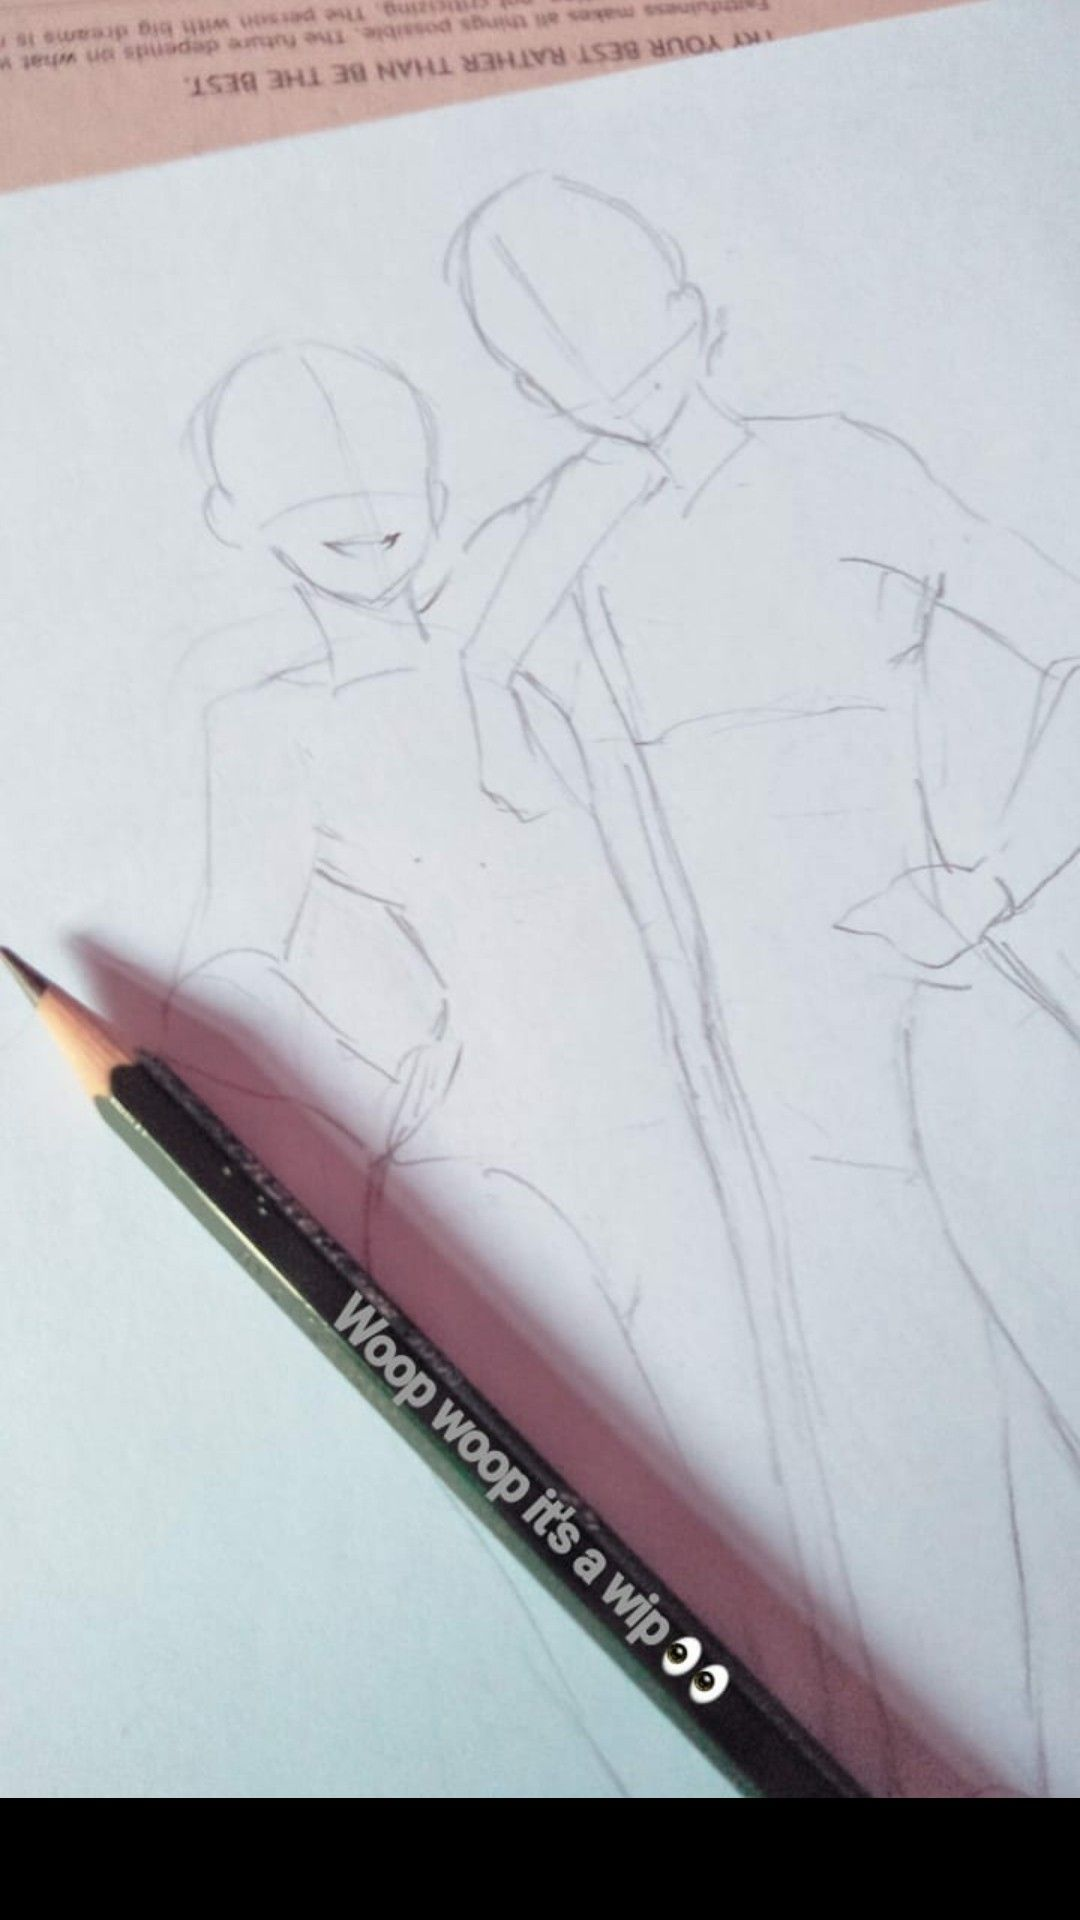 Best Friends Drawings Of Friends Drawings Art Reference Poses